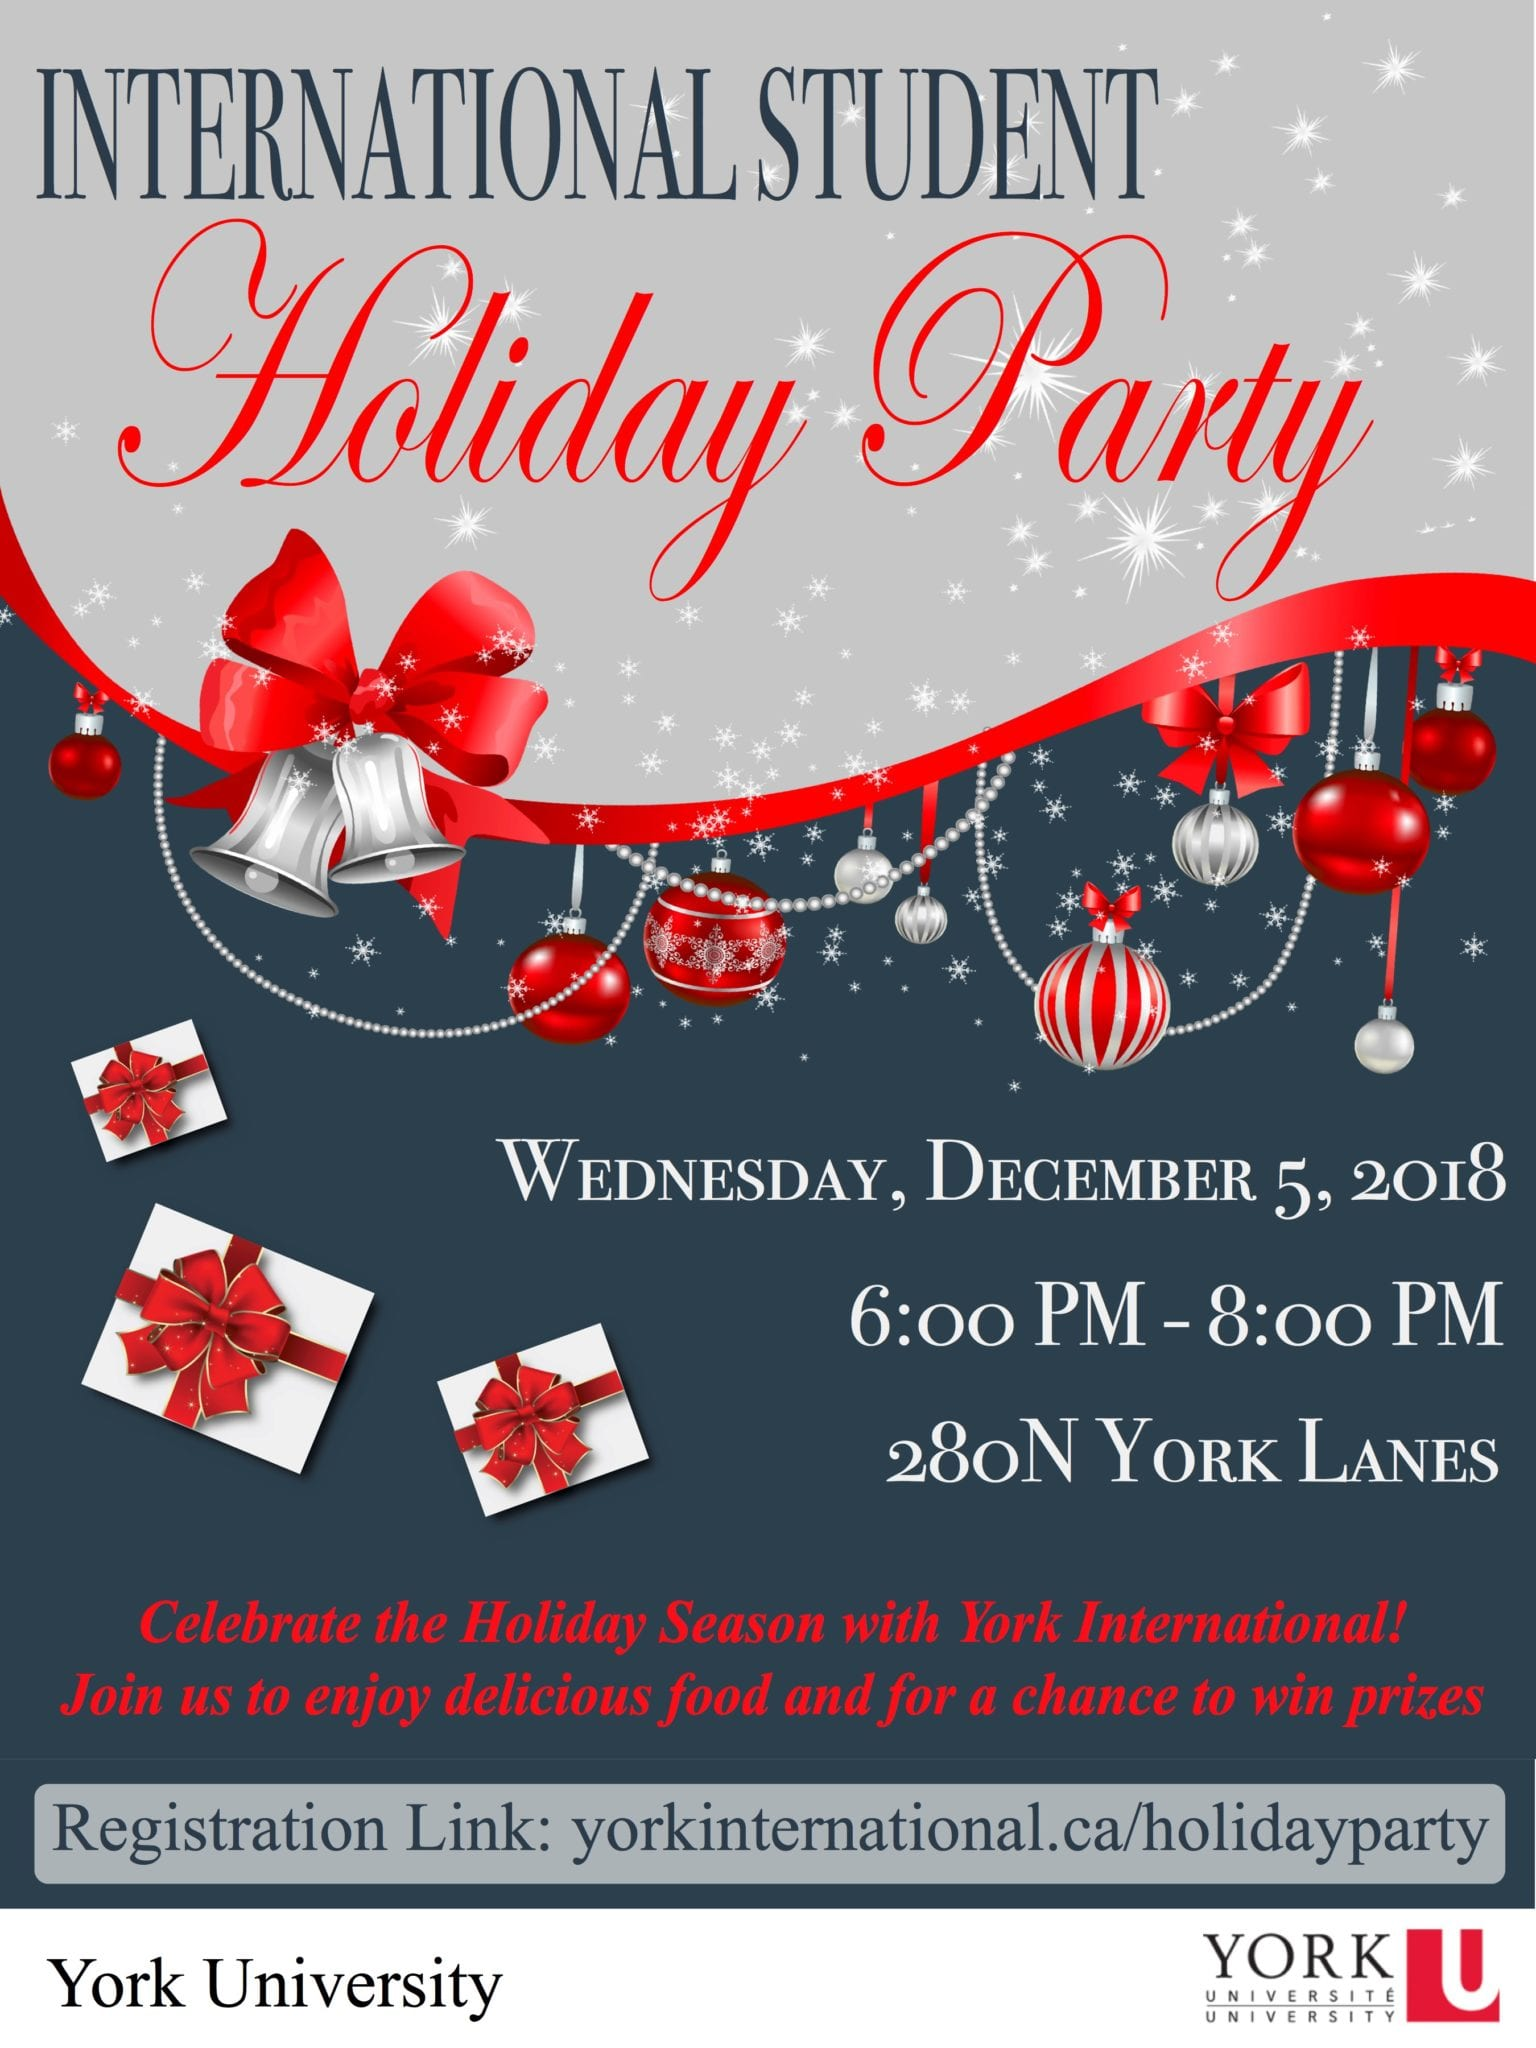 International Student Holiday Party @ 280N York Lanes